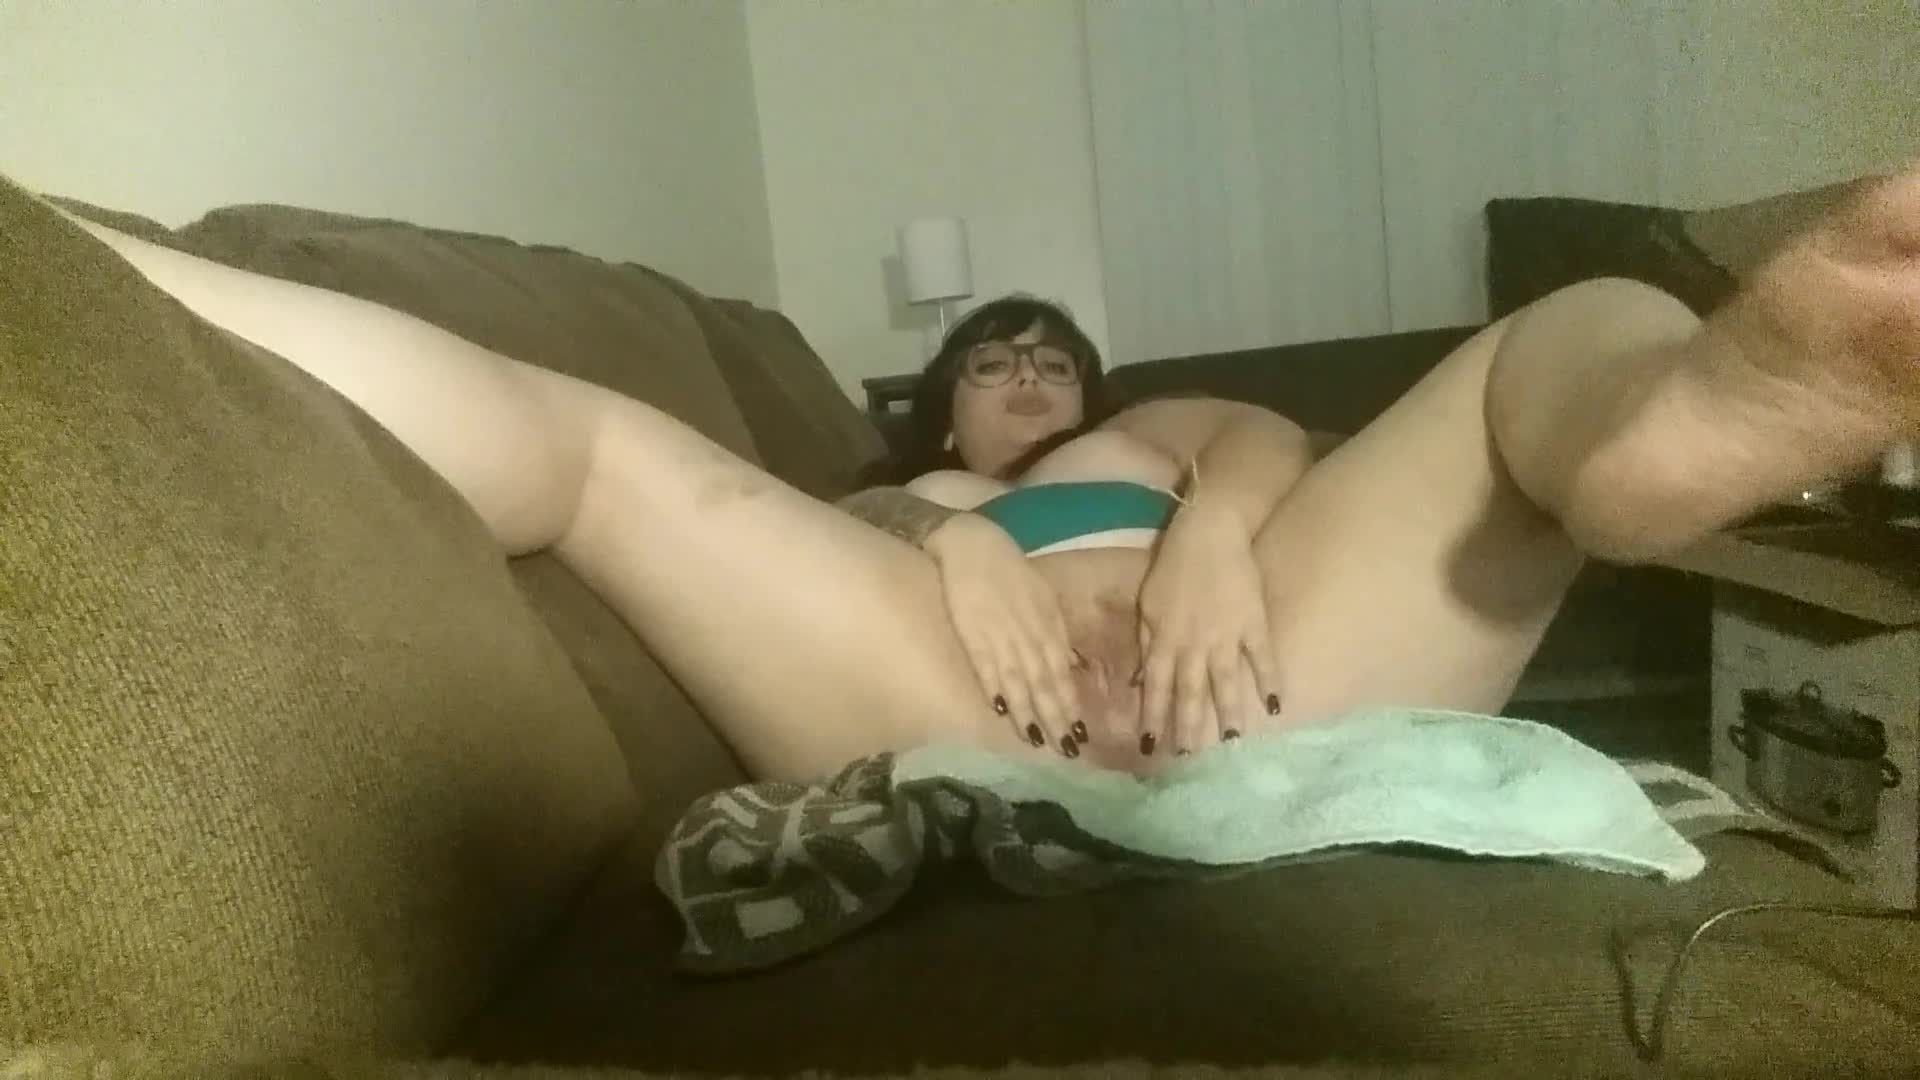 Cuckoldress_Lillyxxx'd vid